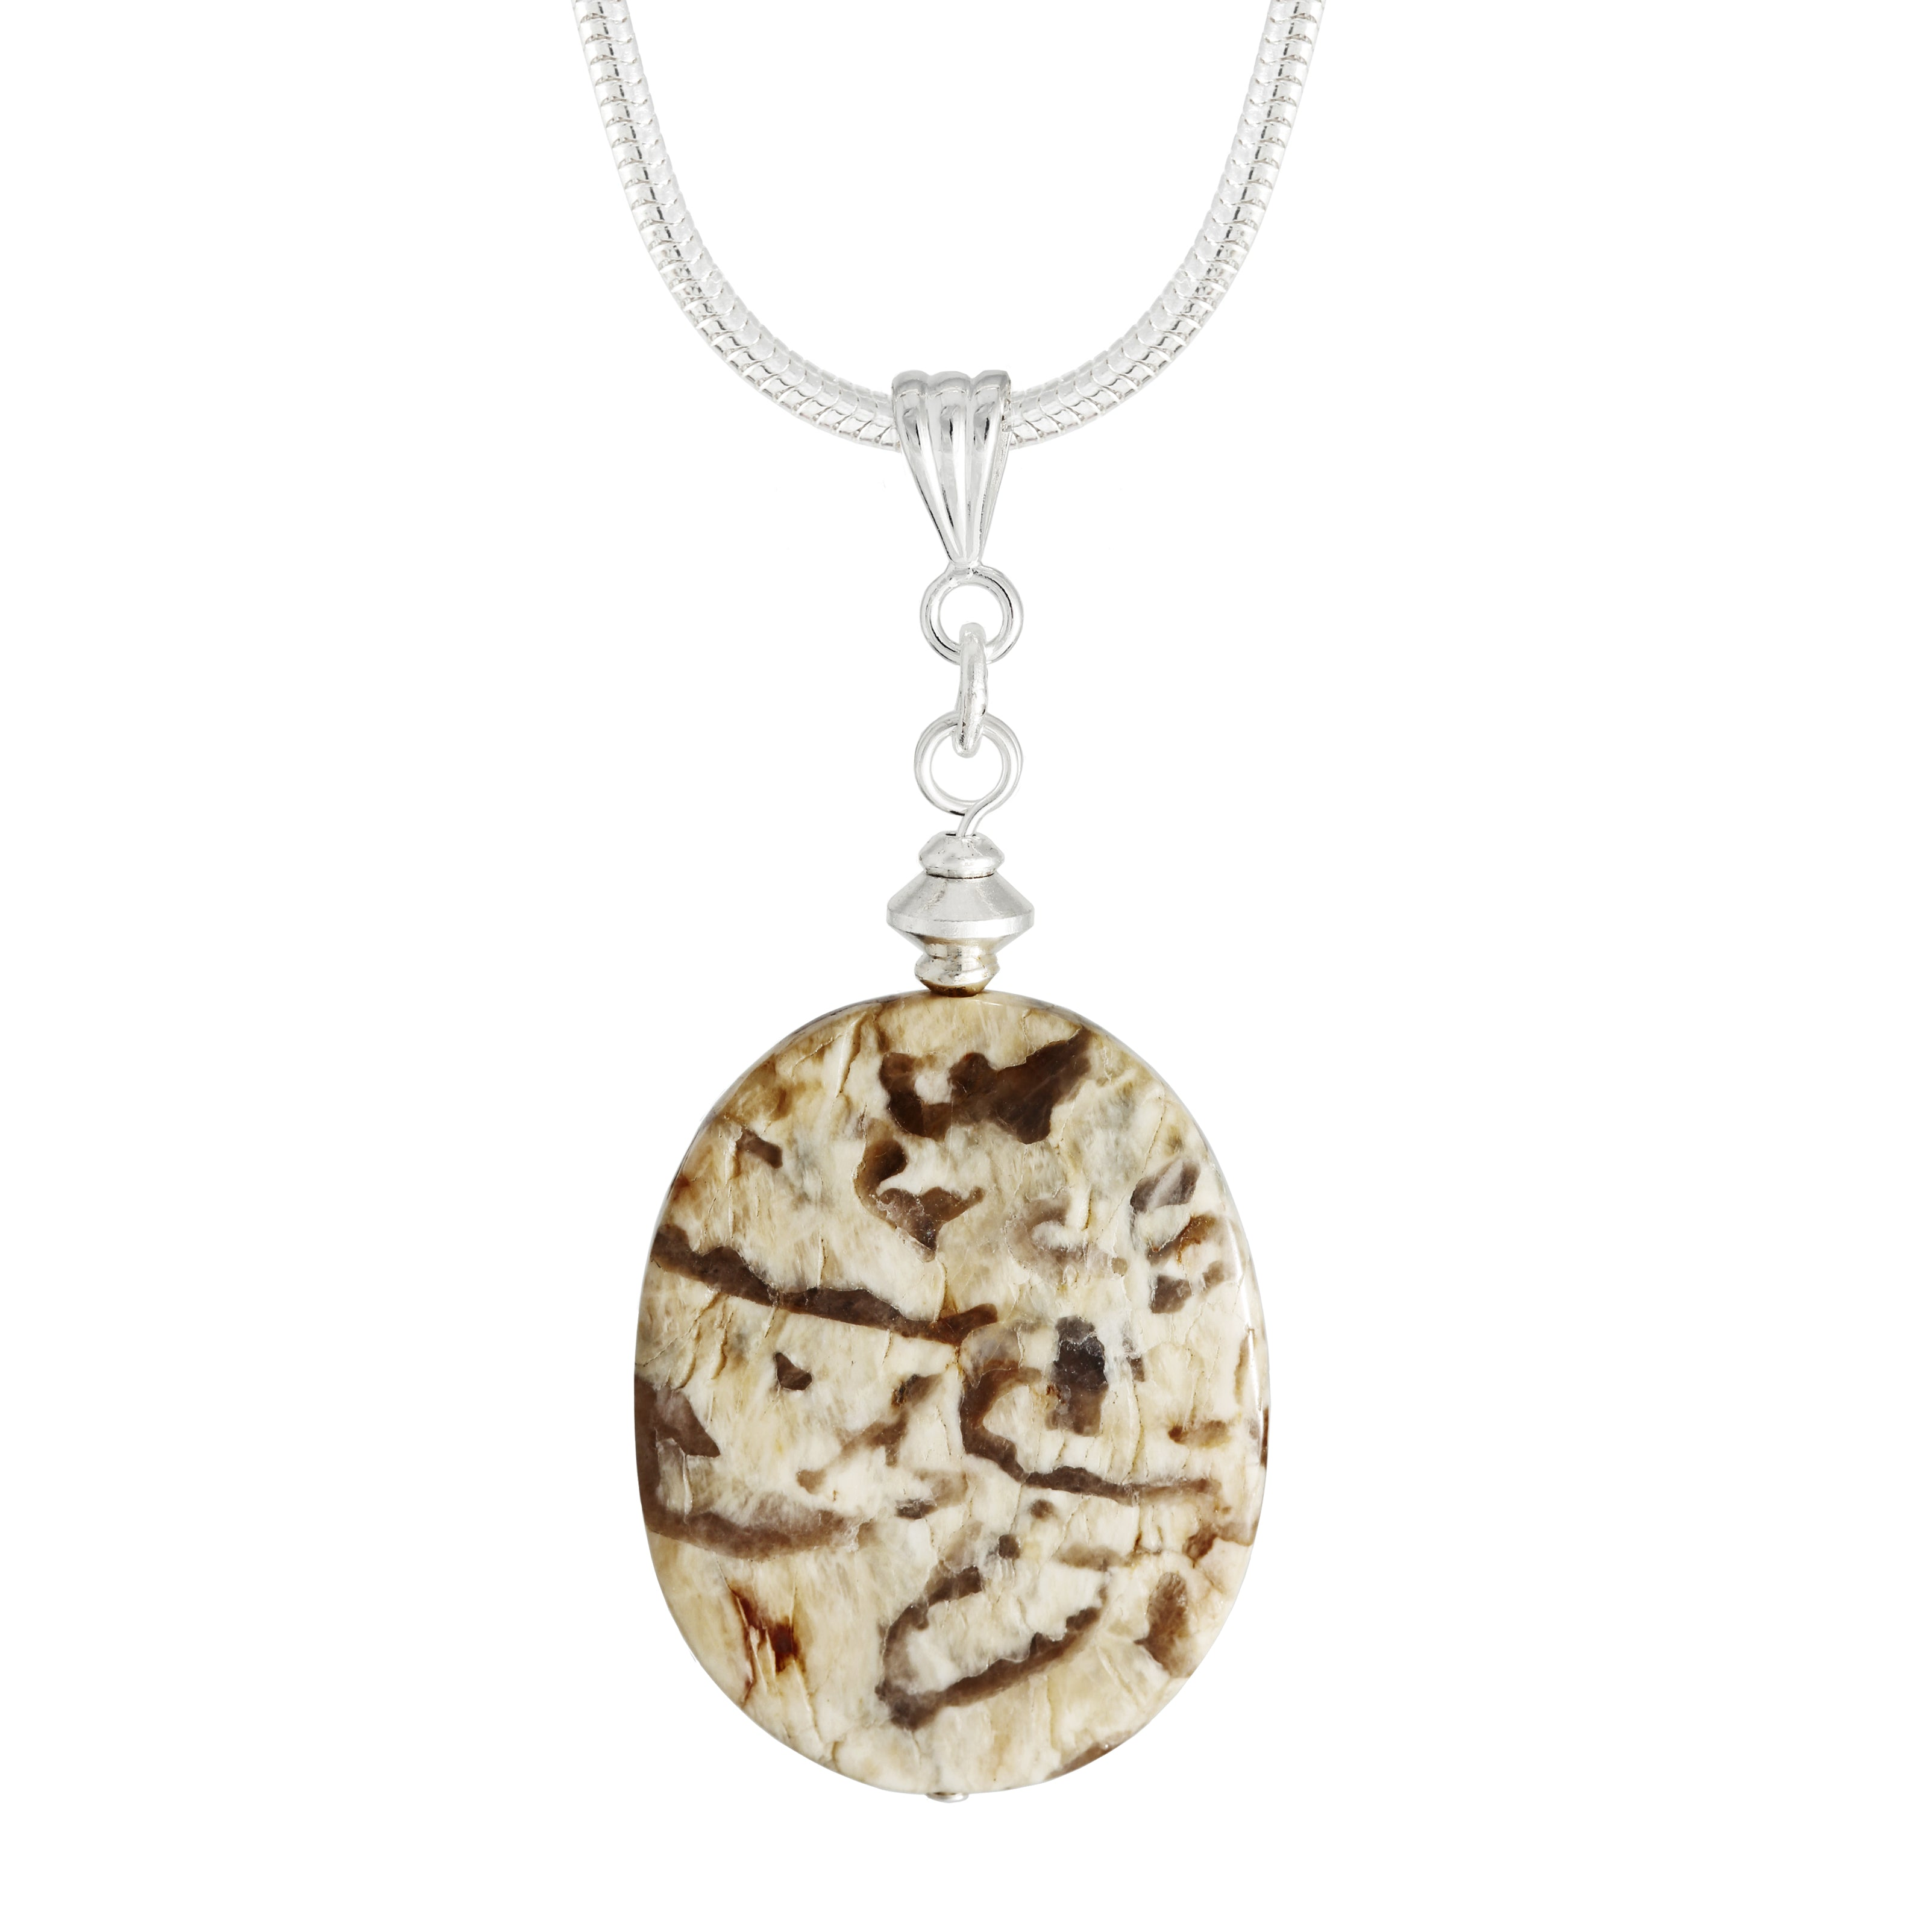 Graphic Feldspar a Cream Oval Stone with Brown markings.  Each necklace has totally individual patterns and co-ordinates with Tiger's Eye jewellery.